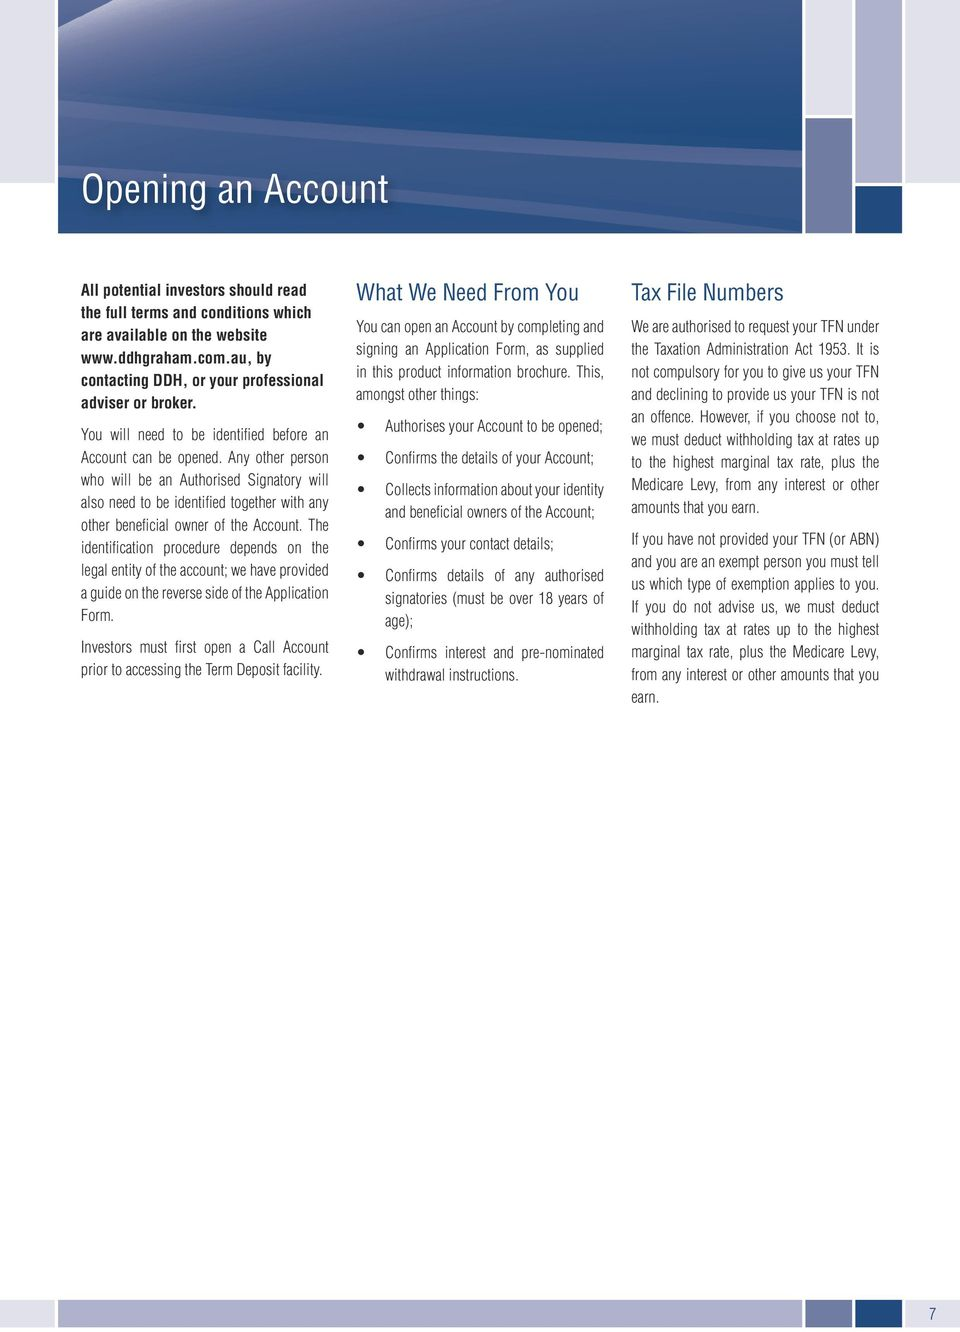 Any other person who will be an Authorised Signatory will also need to be identified together with any other beneficial owner of the Account.